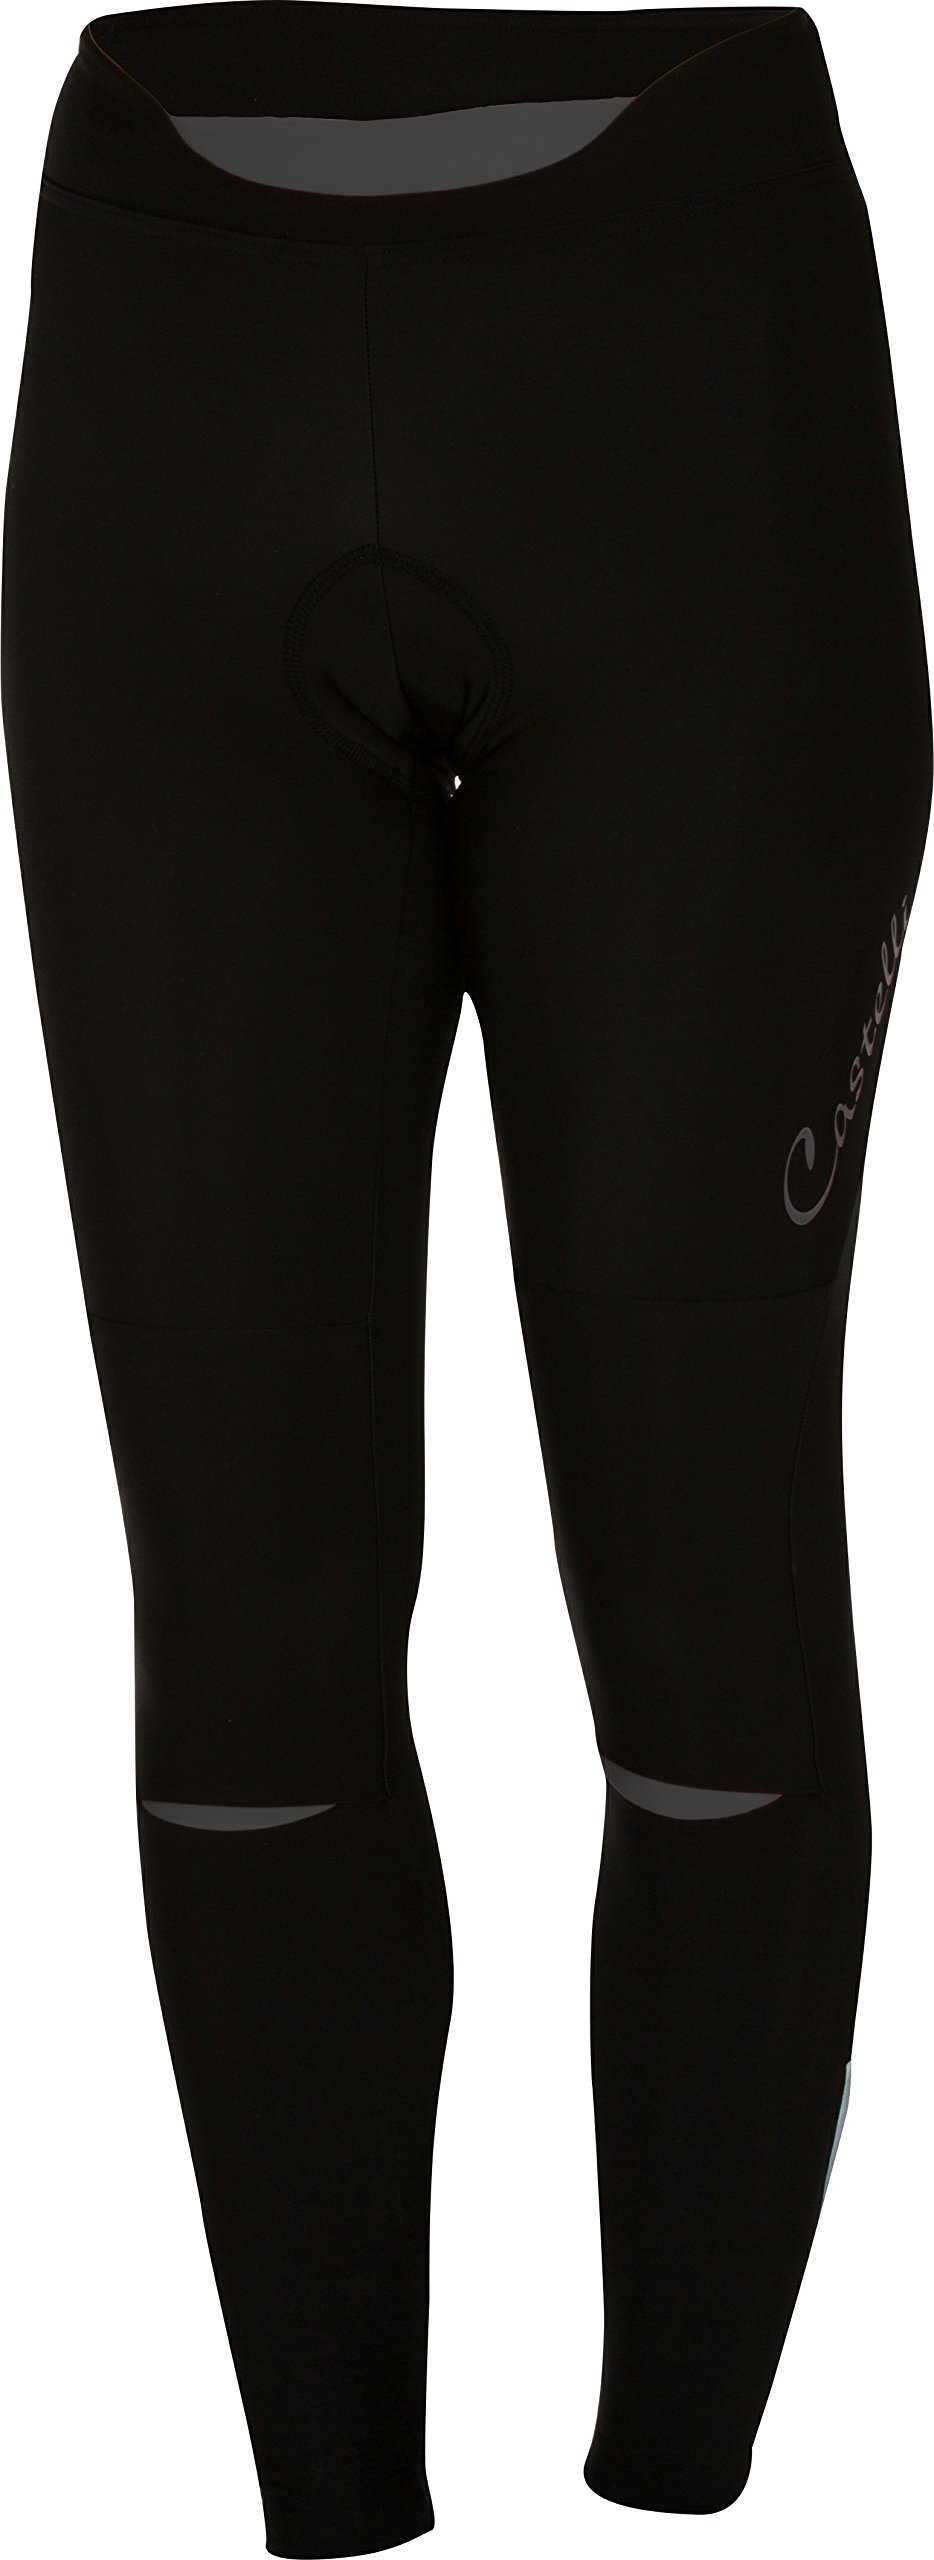 Castelli Women's Chic Cycling Tight (Small, Black/Anthracite)